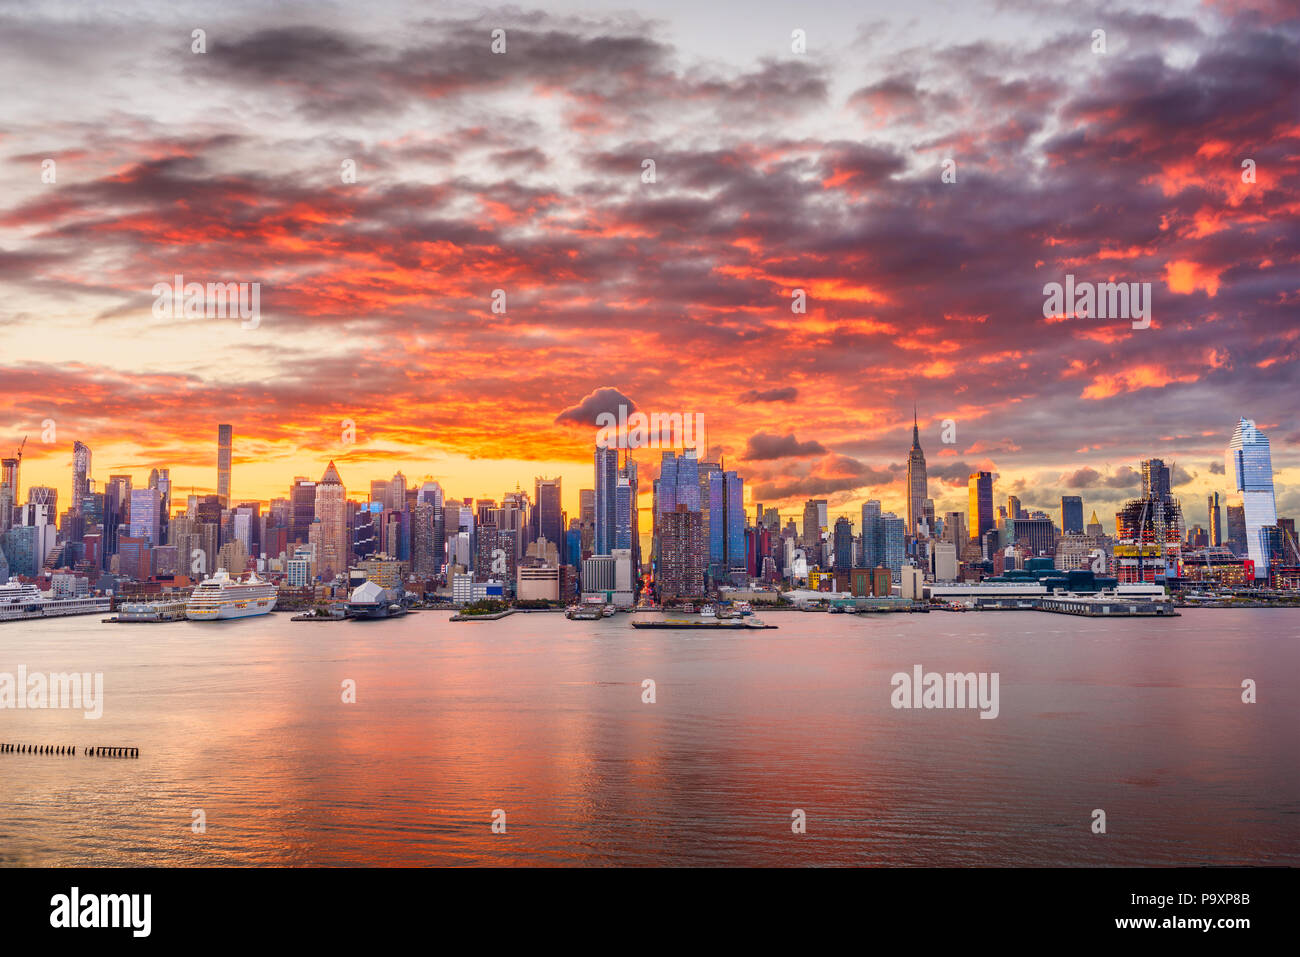 New York, New York, USA midtown skyline at dawn from the Hudson River. - Stock Image